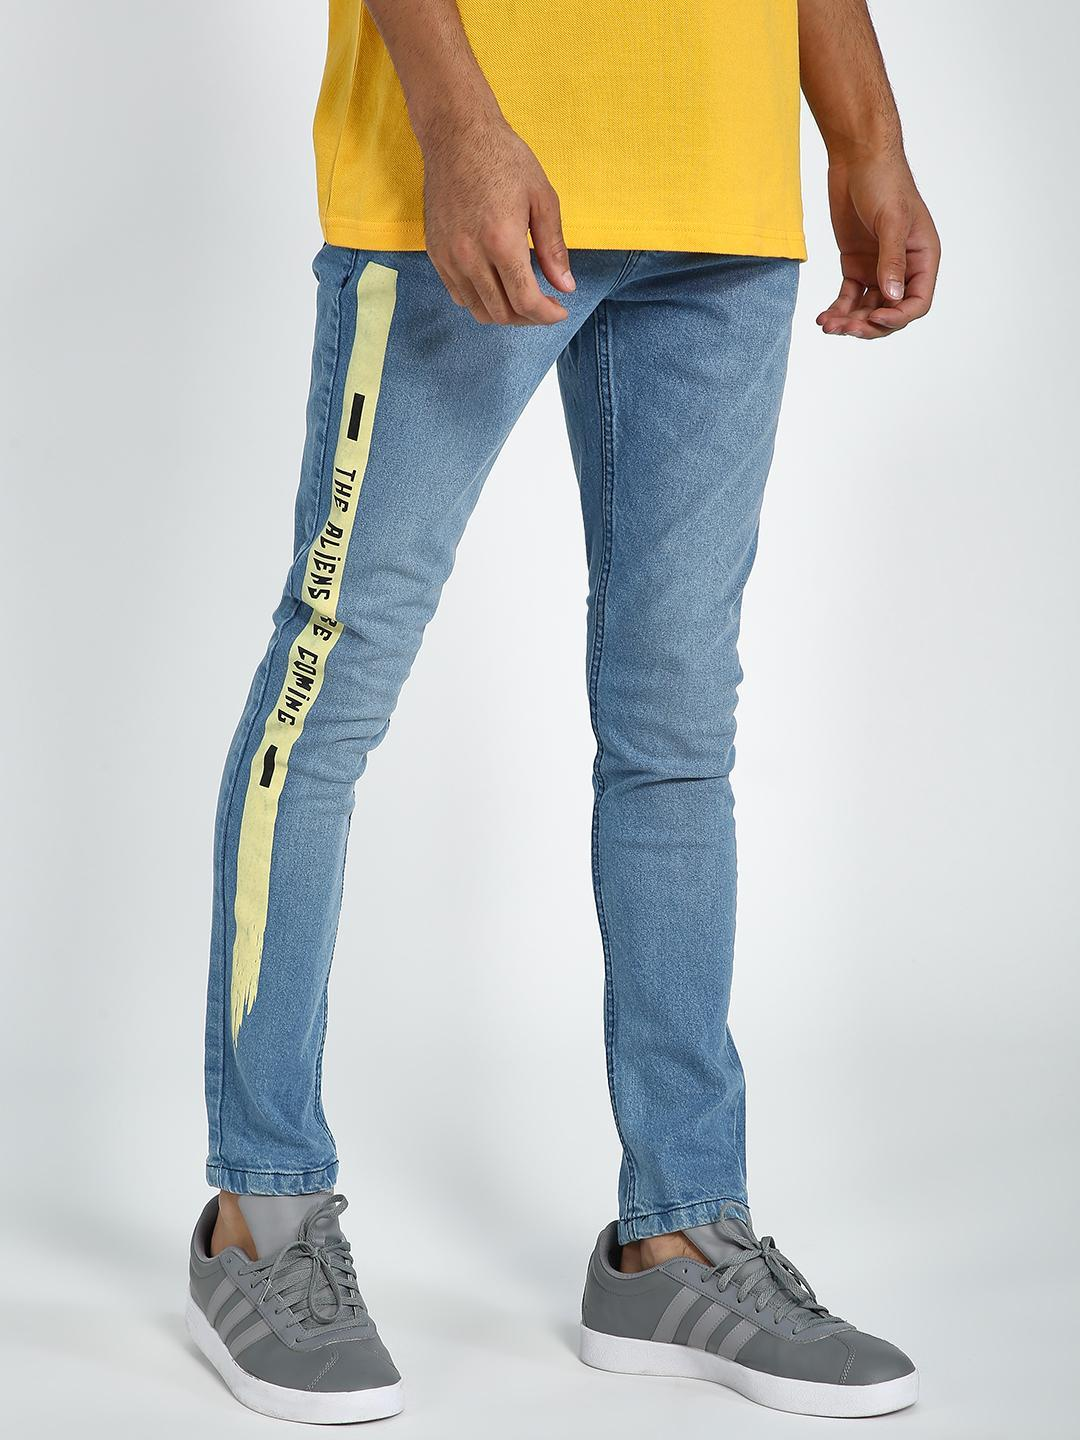 Blue Saint Blue Text Printed Skinny Jeans 1